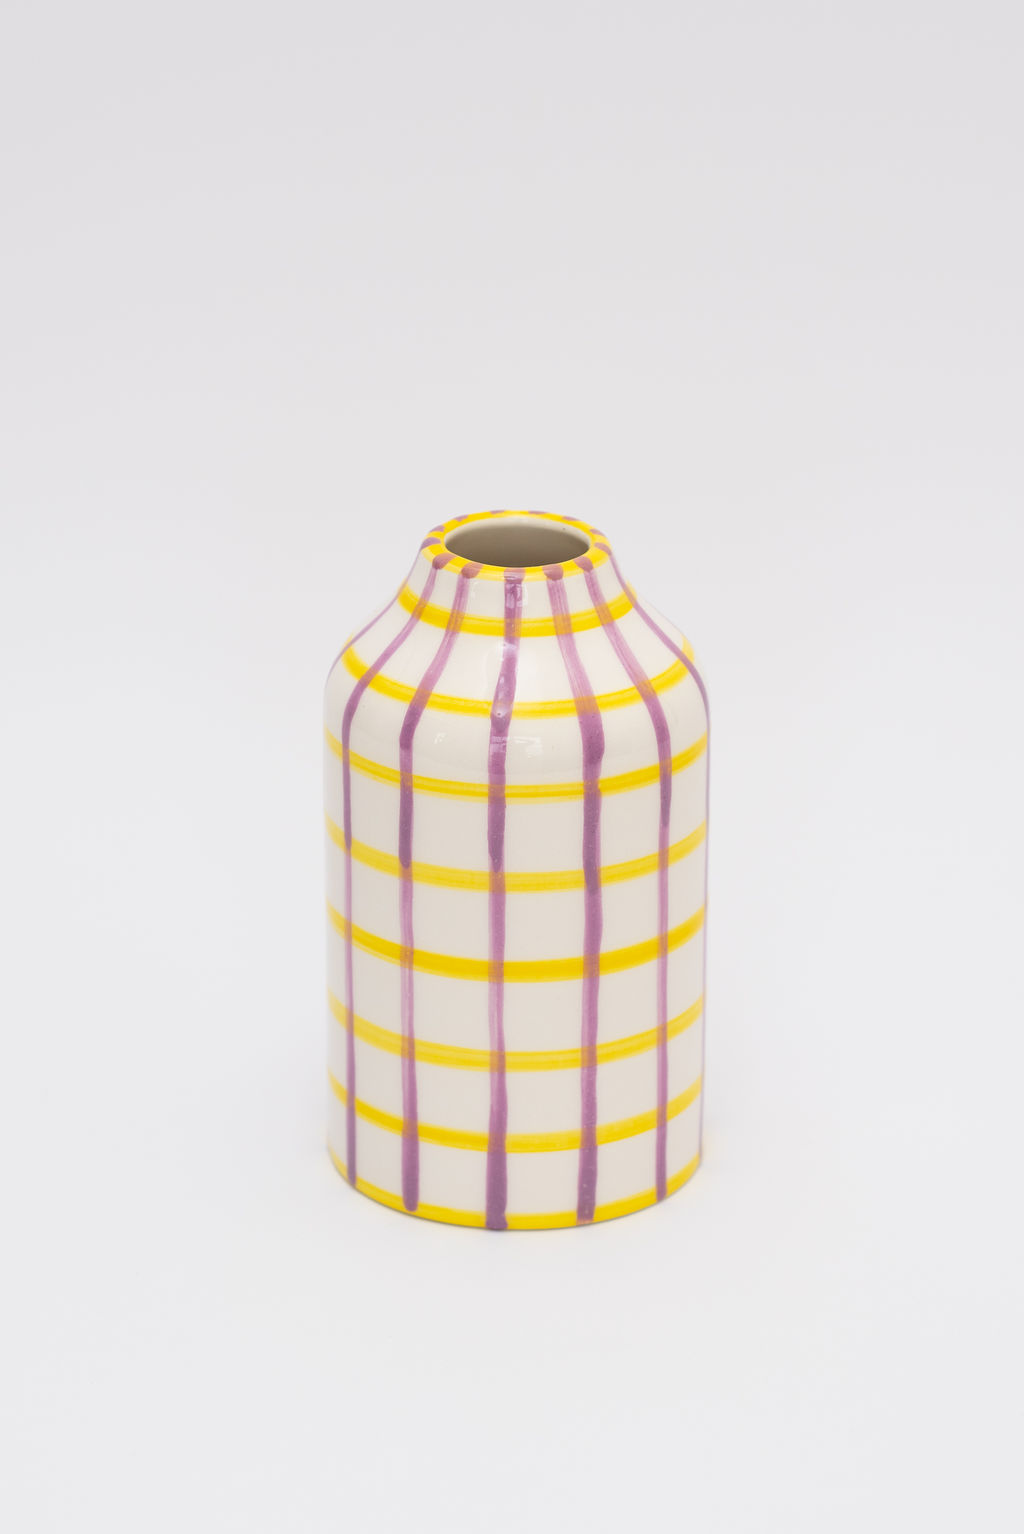 GENIE IN A BOTTLE - Lilac and Lemon - Vaisselle